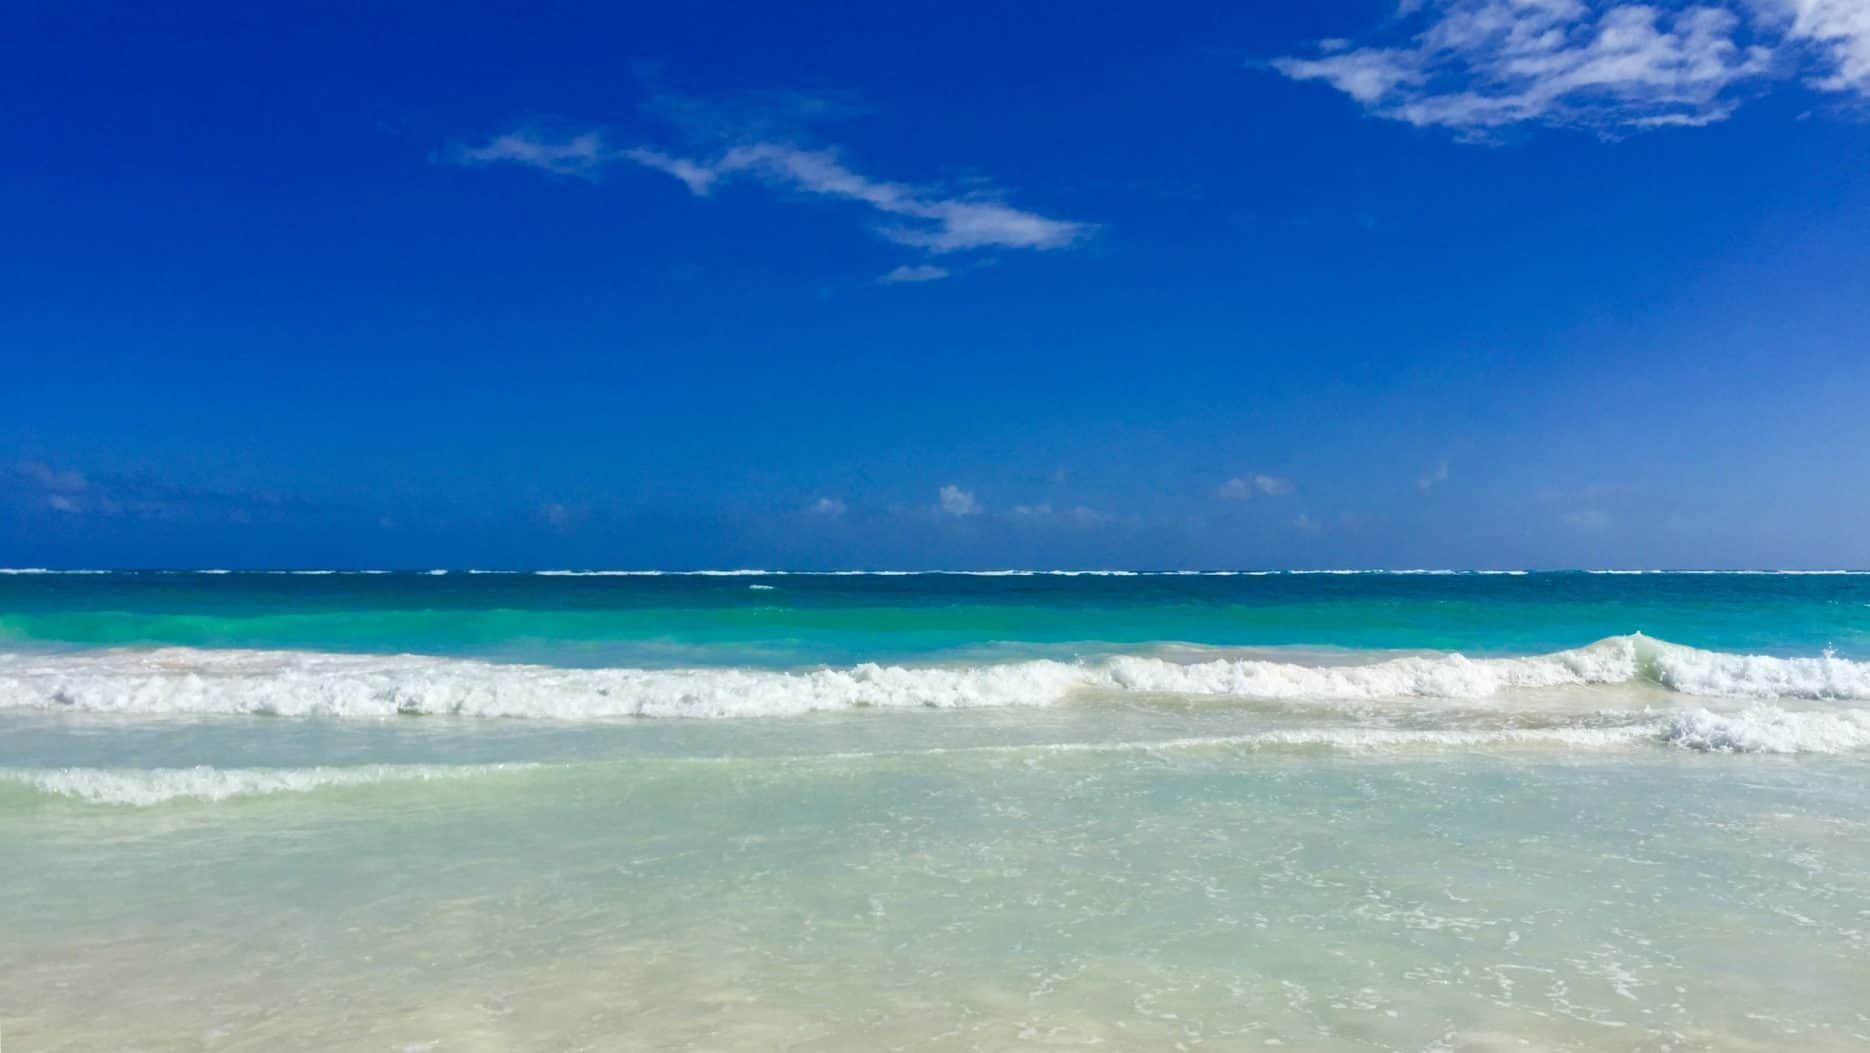 Retired in Tulum, Mexico: My monthly expenses